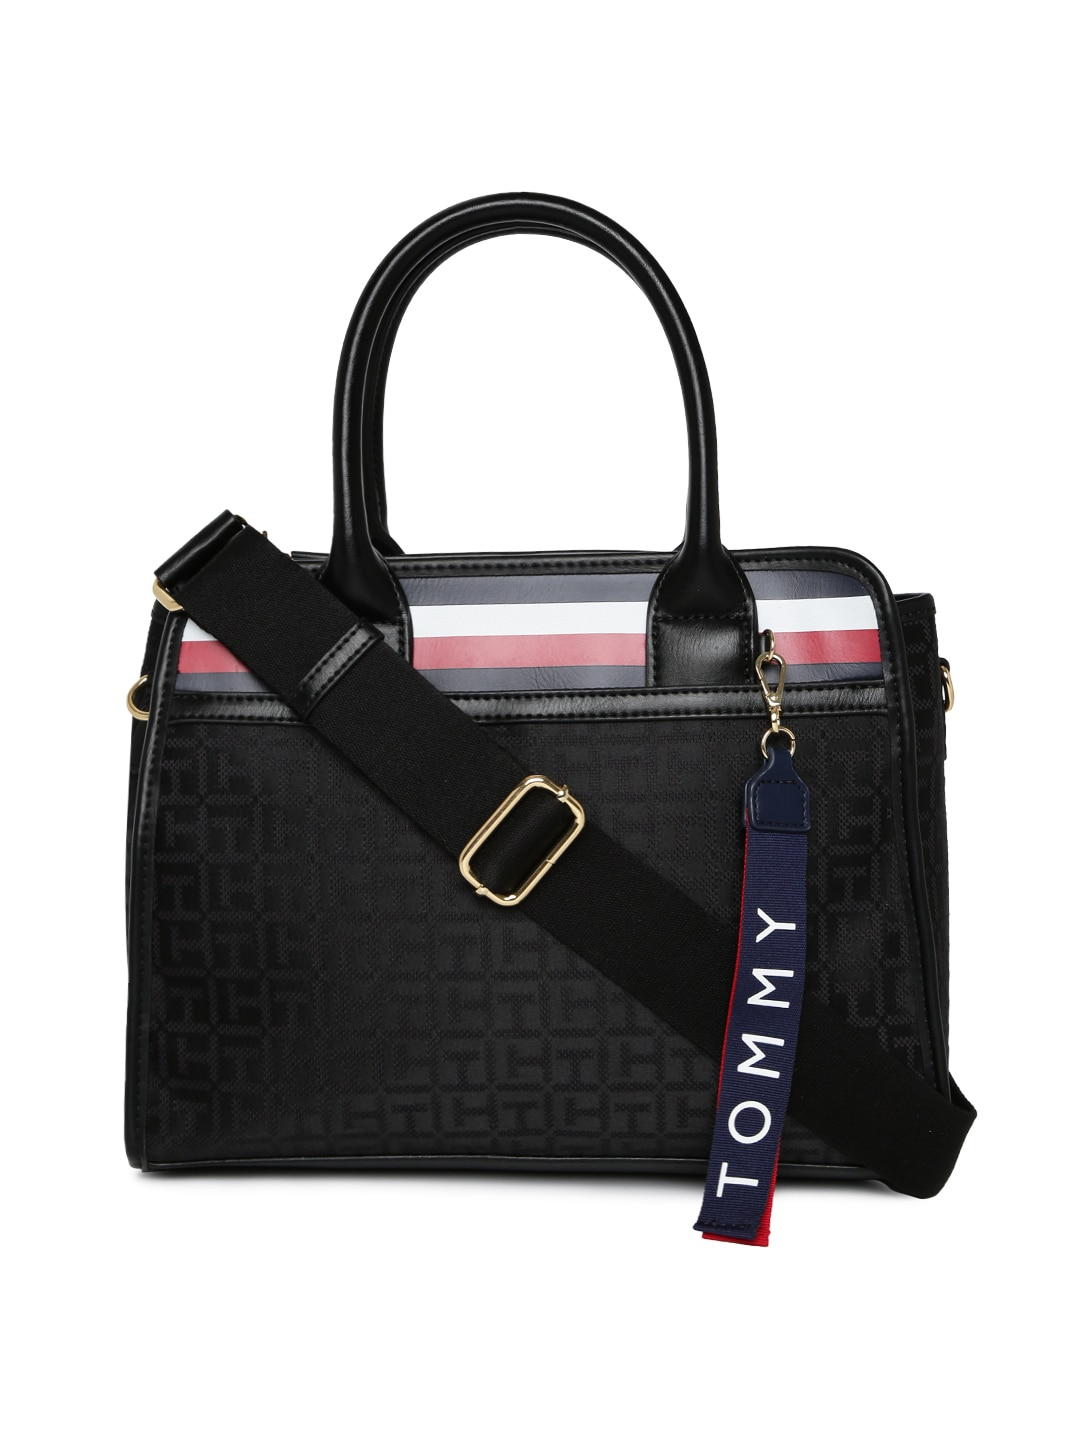 6703225cc3 Tommy Hilfiger Clothing - Buy Tommy Hilfiger Bags